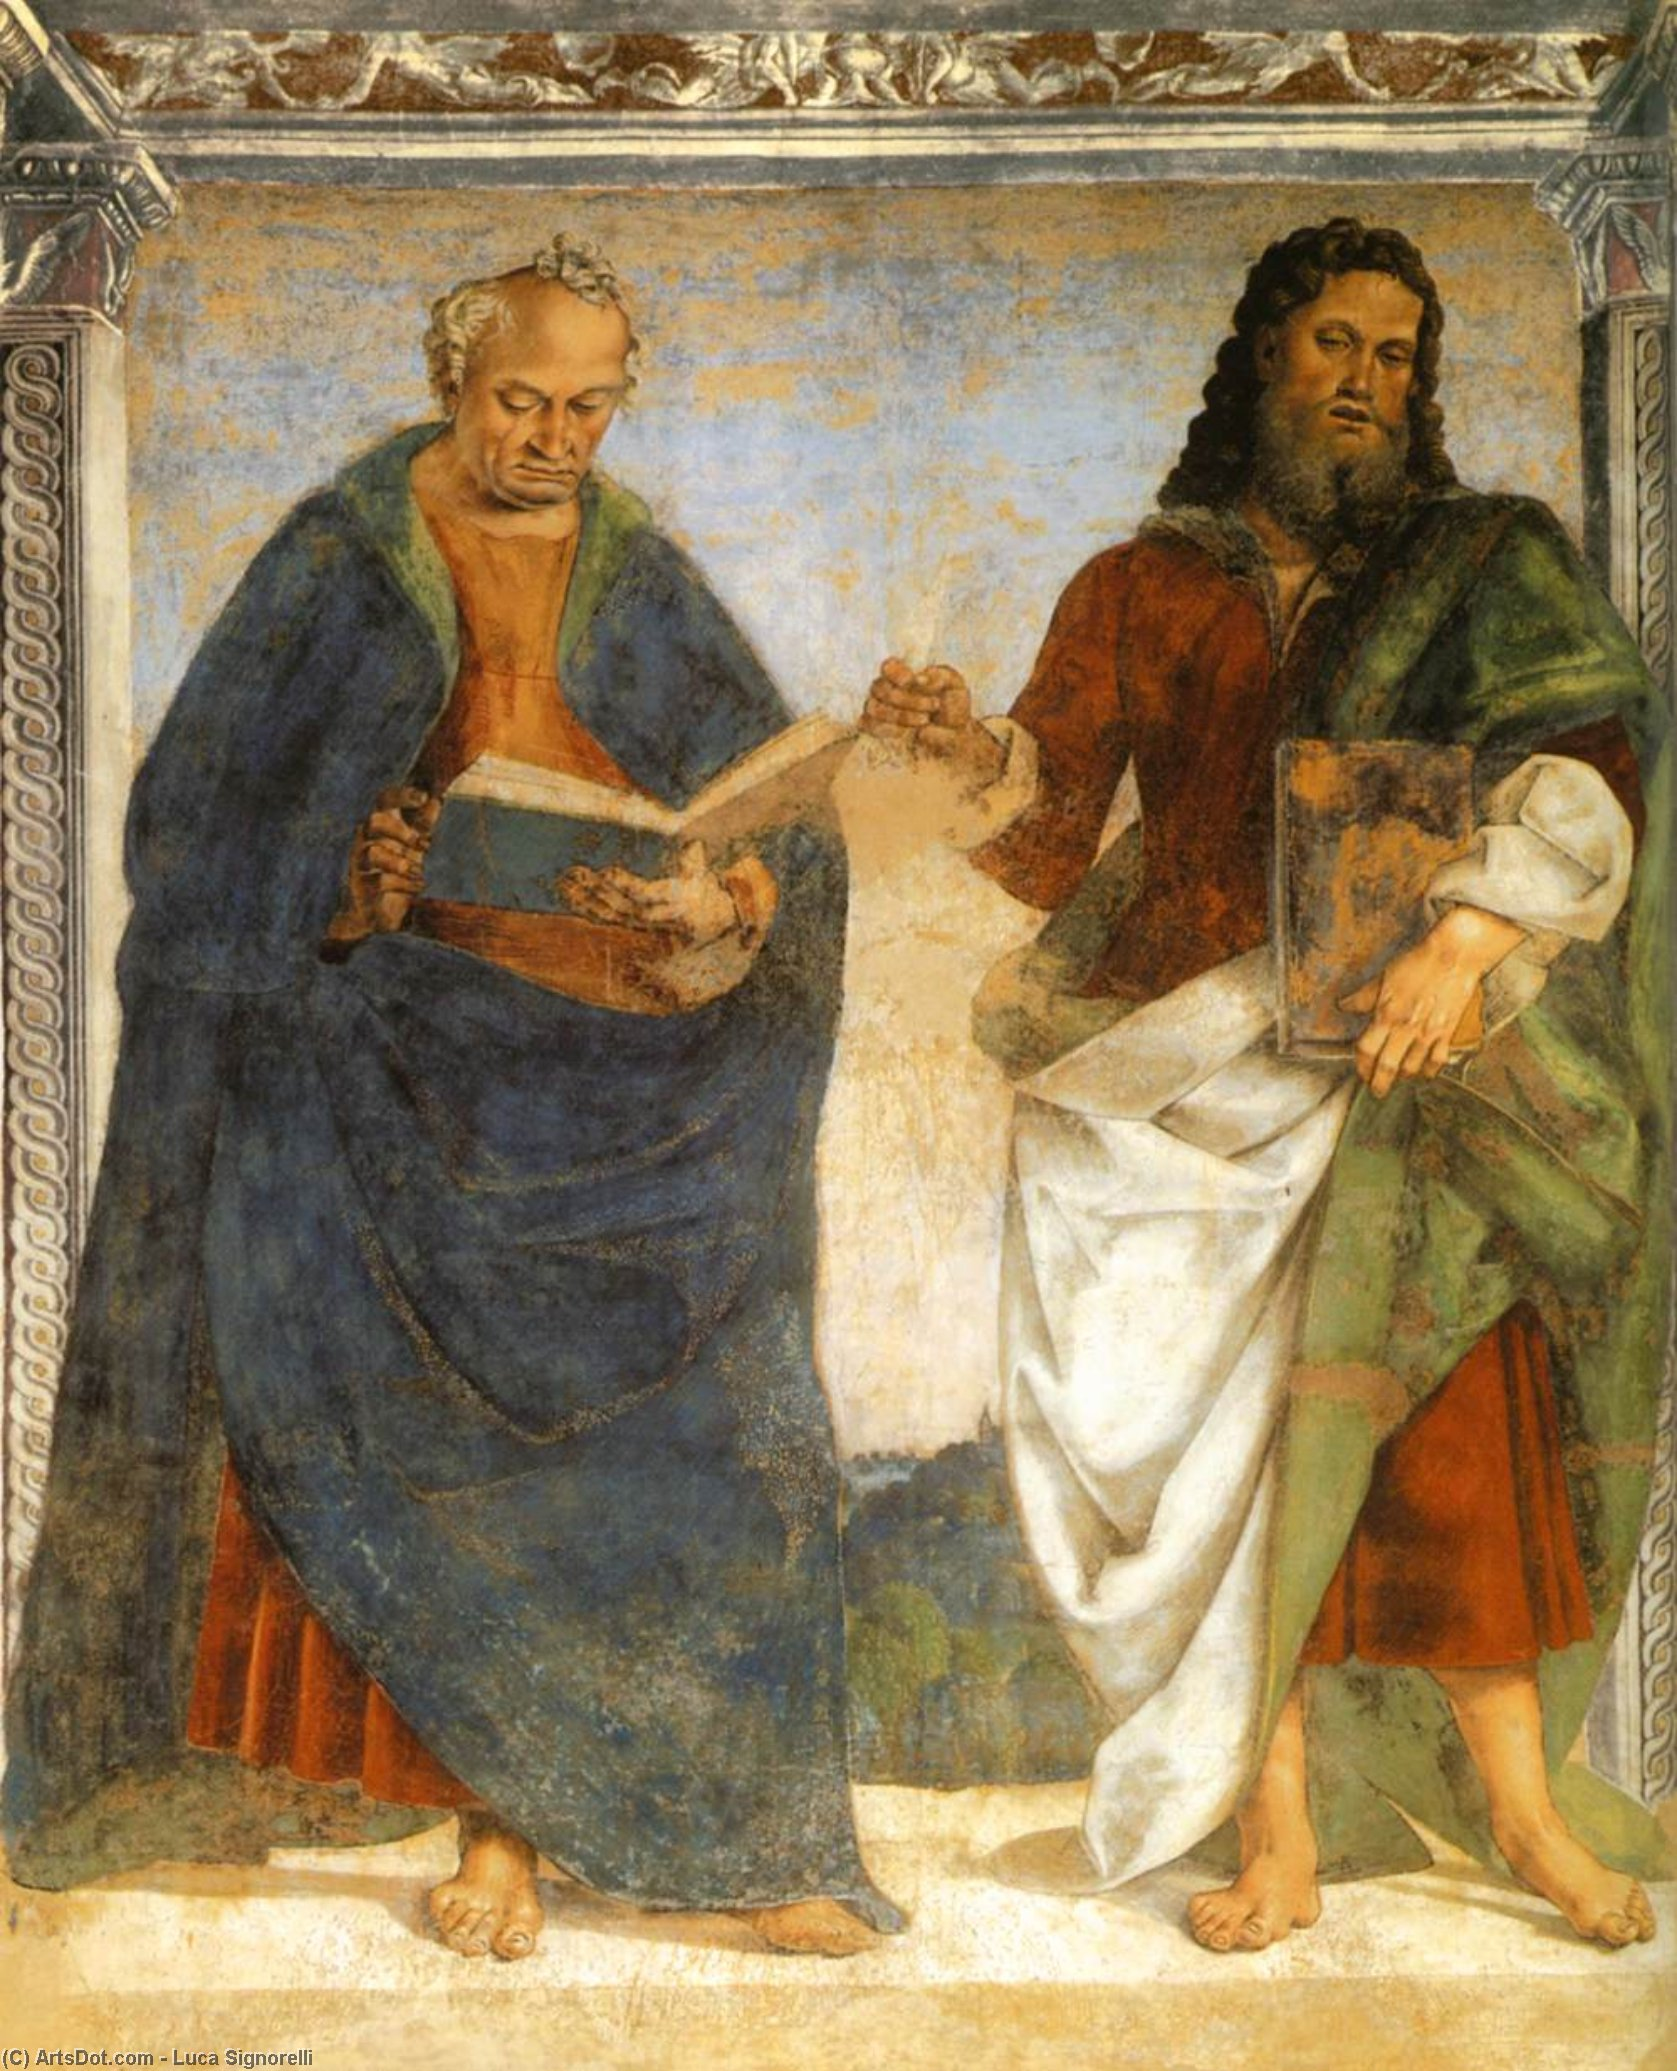 Pair of Apostles in Dispute, Frescoes by Luca Signorelli (1450-1523, Italy)